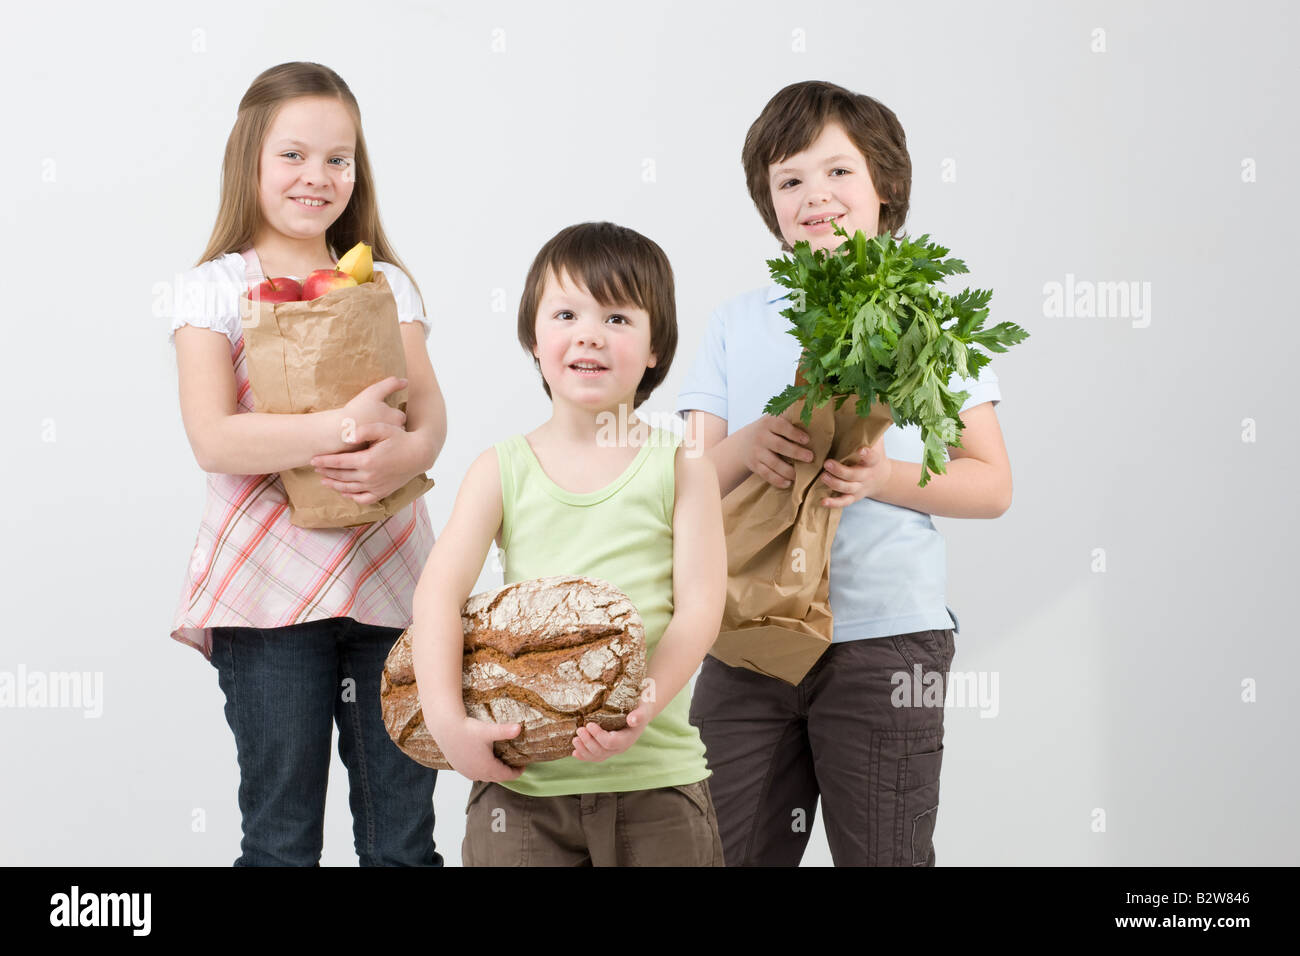 Children with groceries - Stock Image